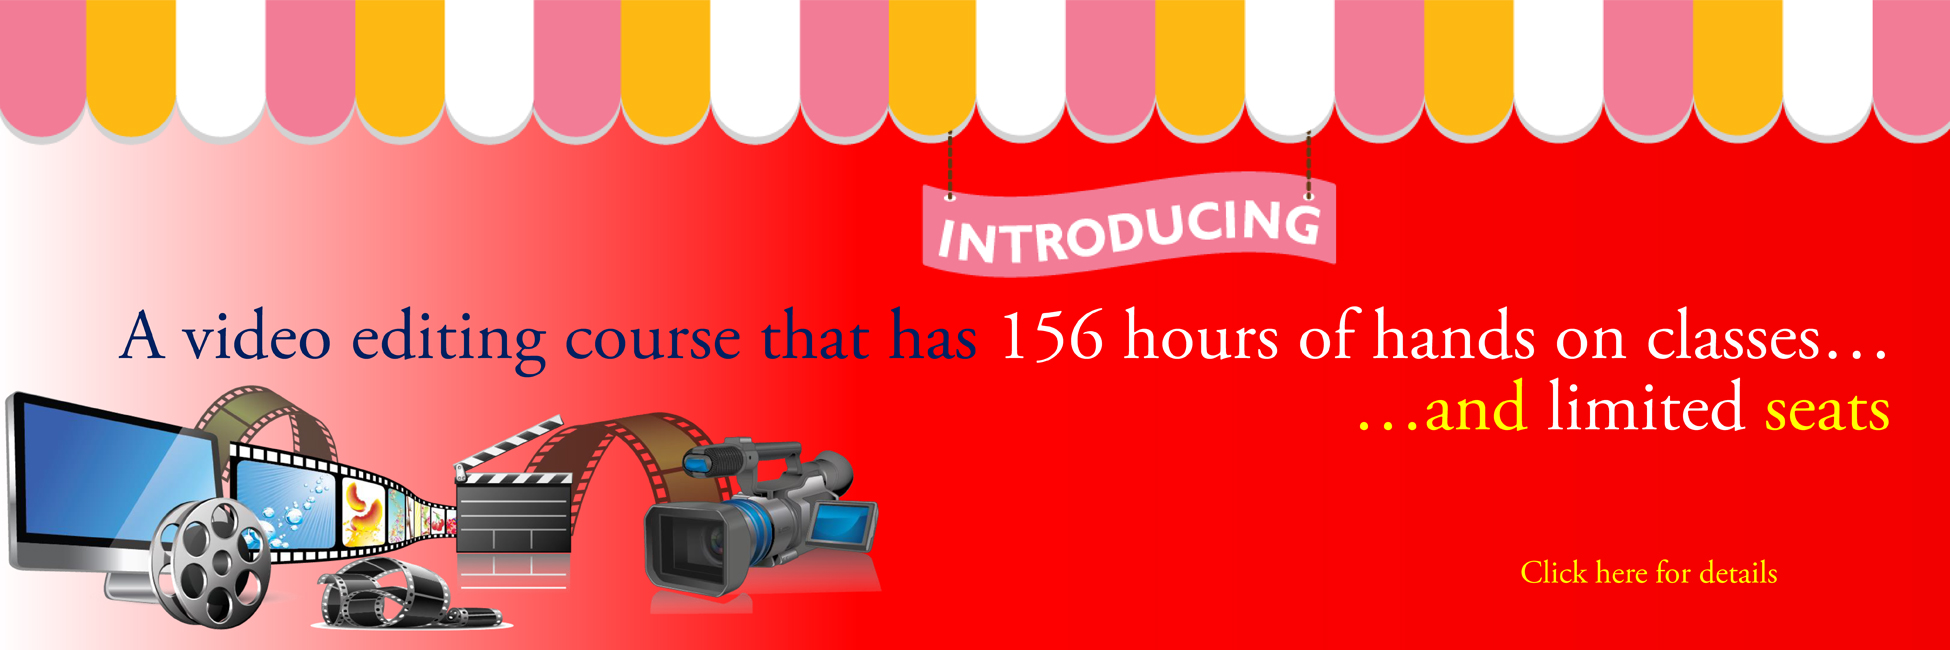 banner-for-cmi-website-a-video-editing-course